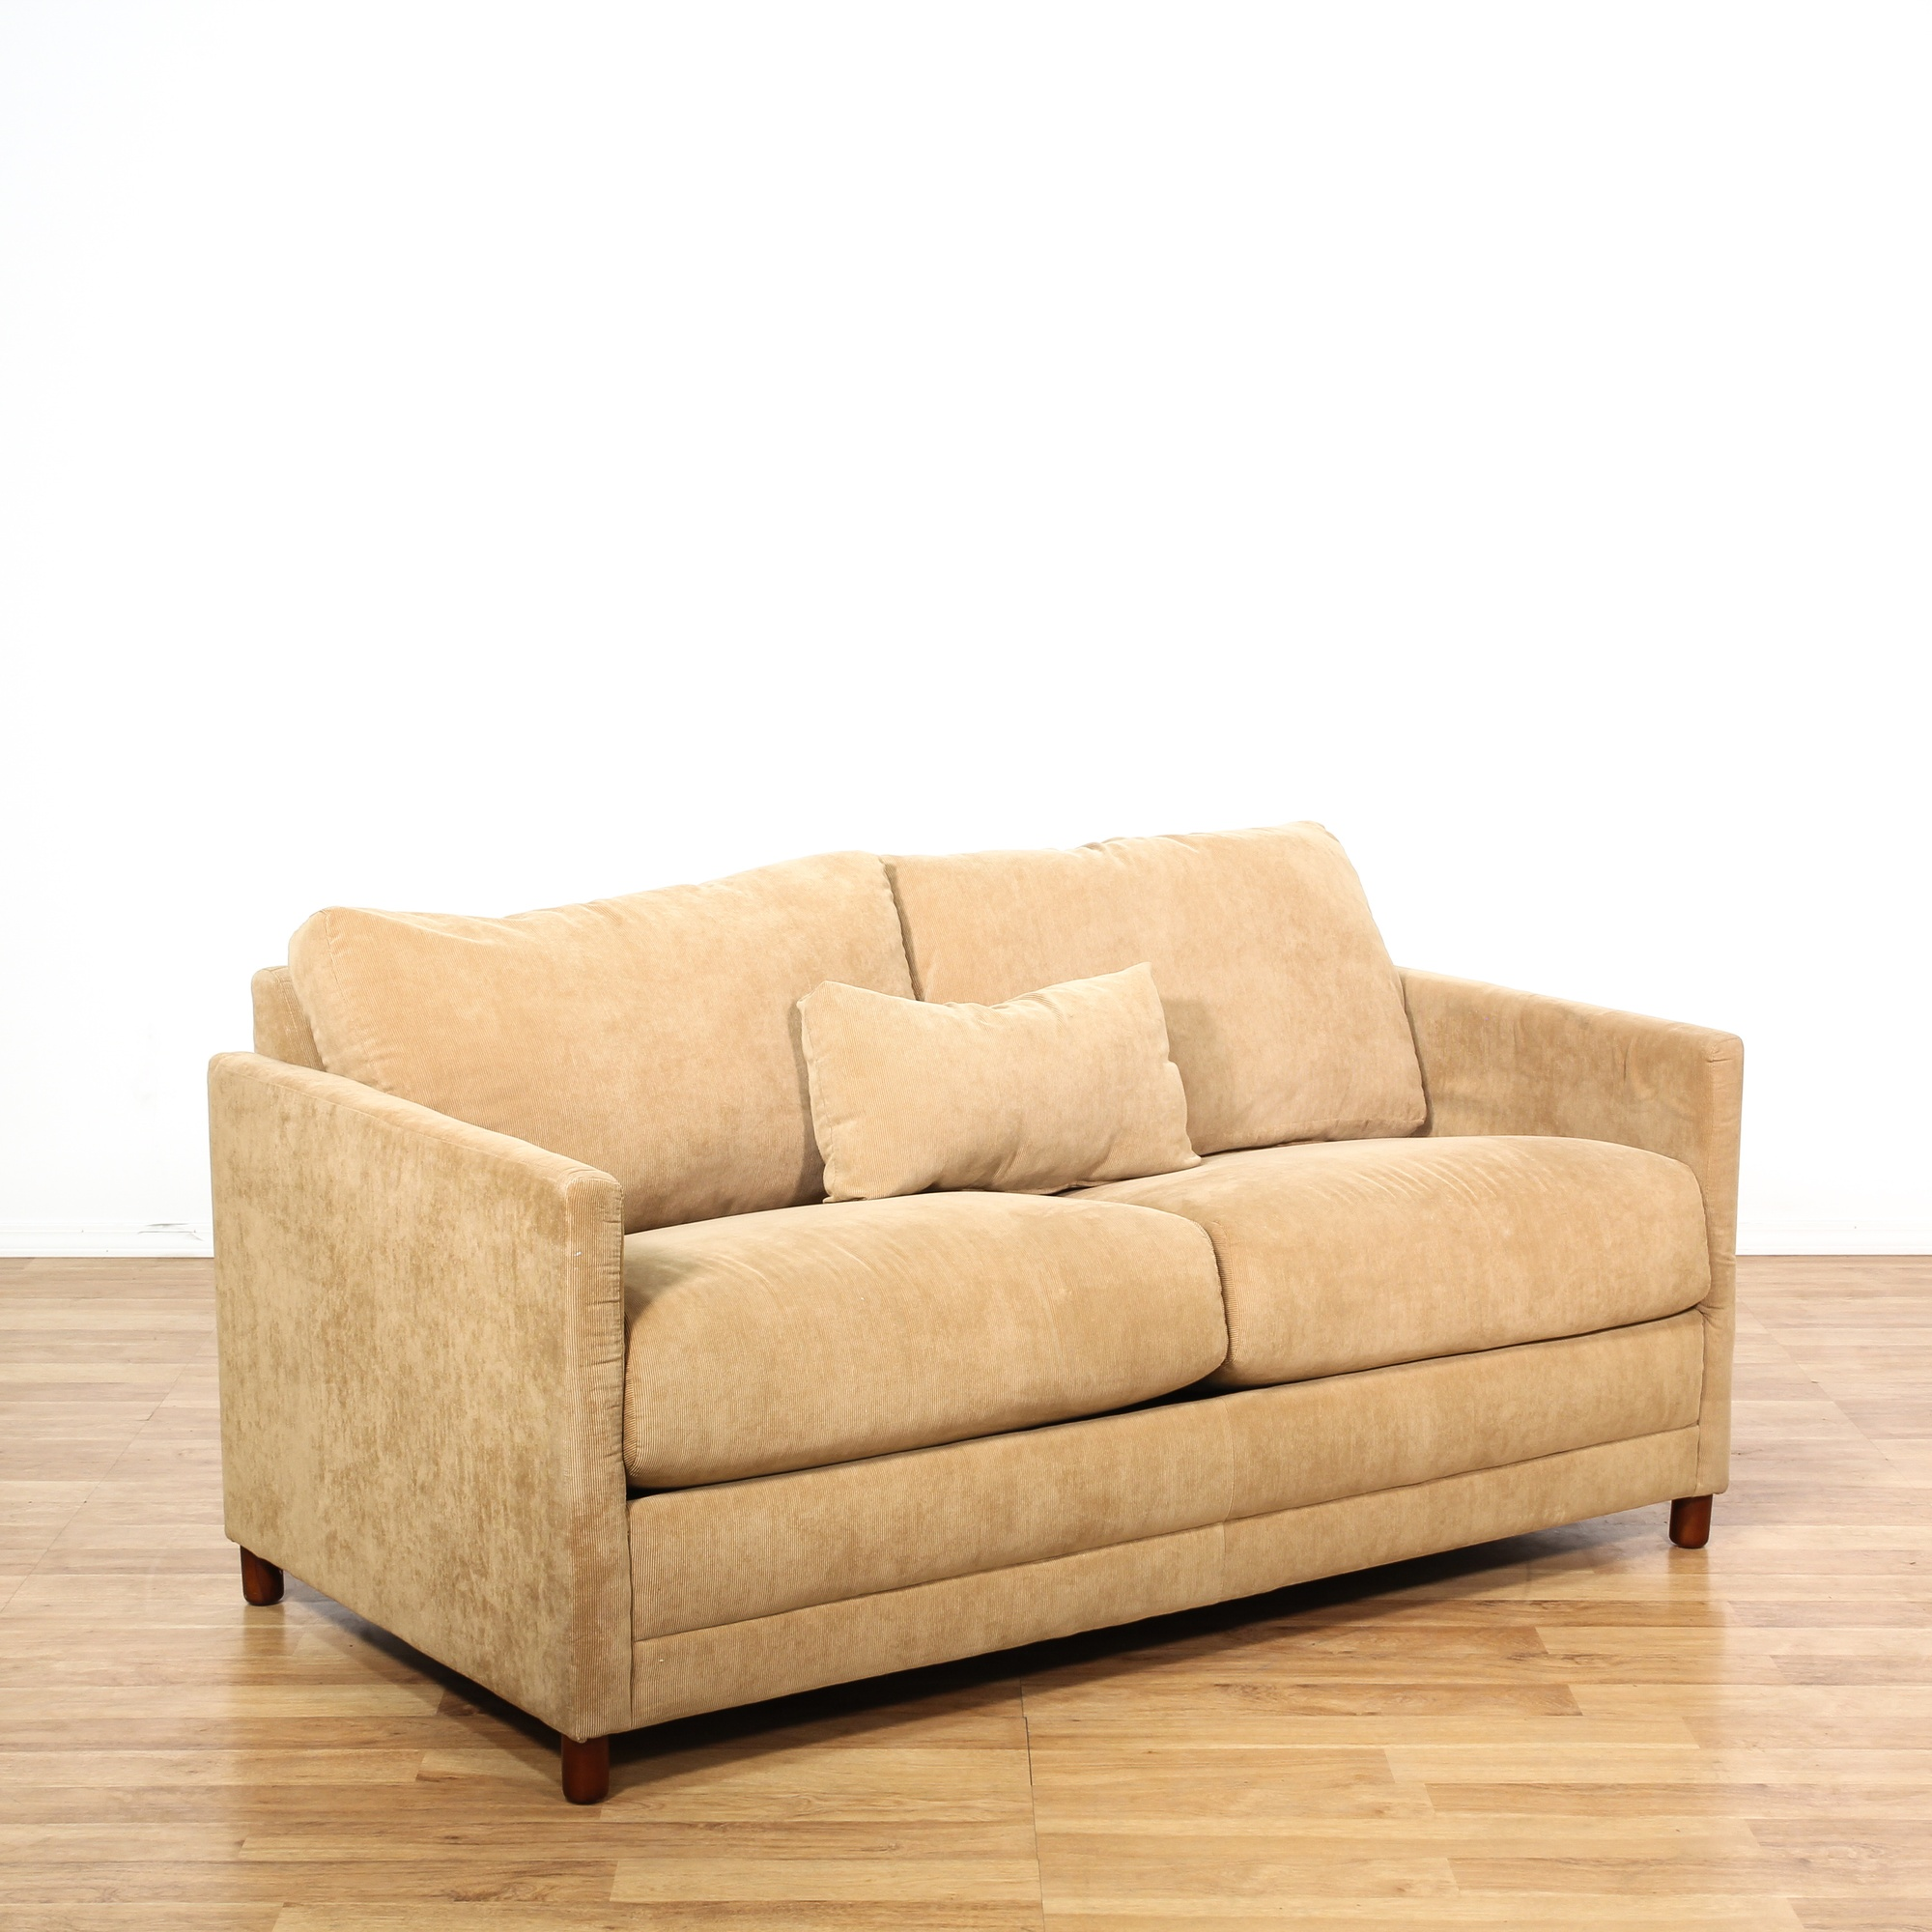 Baker brown corduroy loveseat sleeper sofa loveseat for Brown corduroy couch